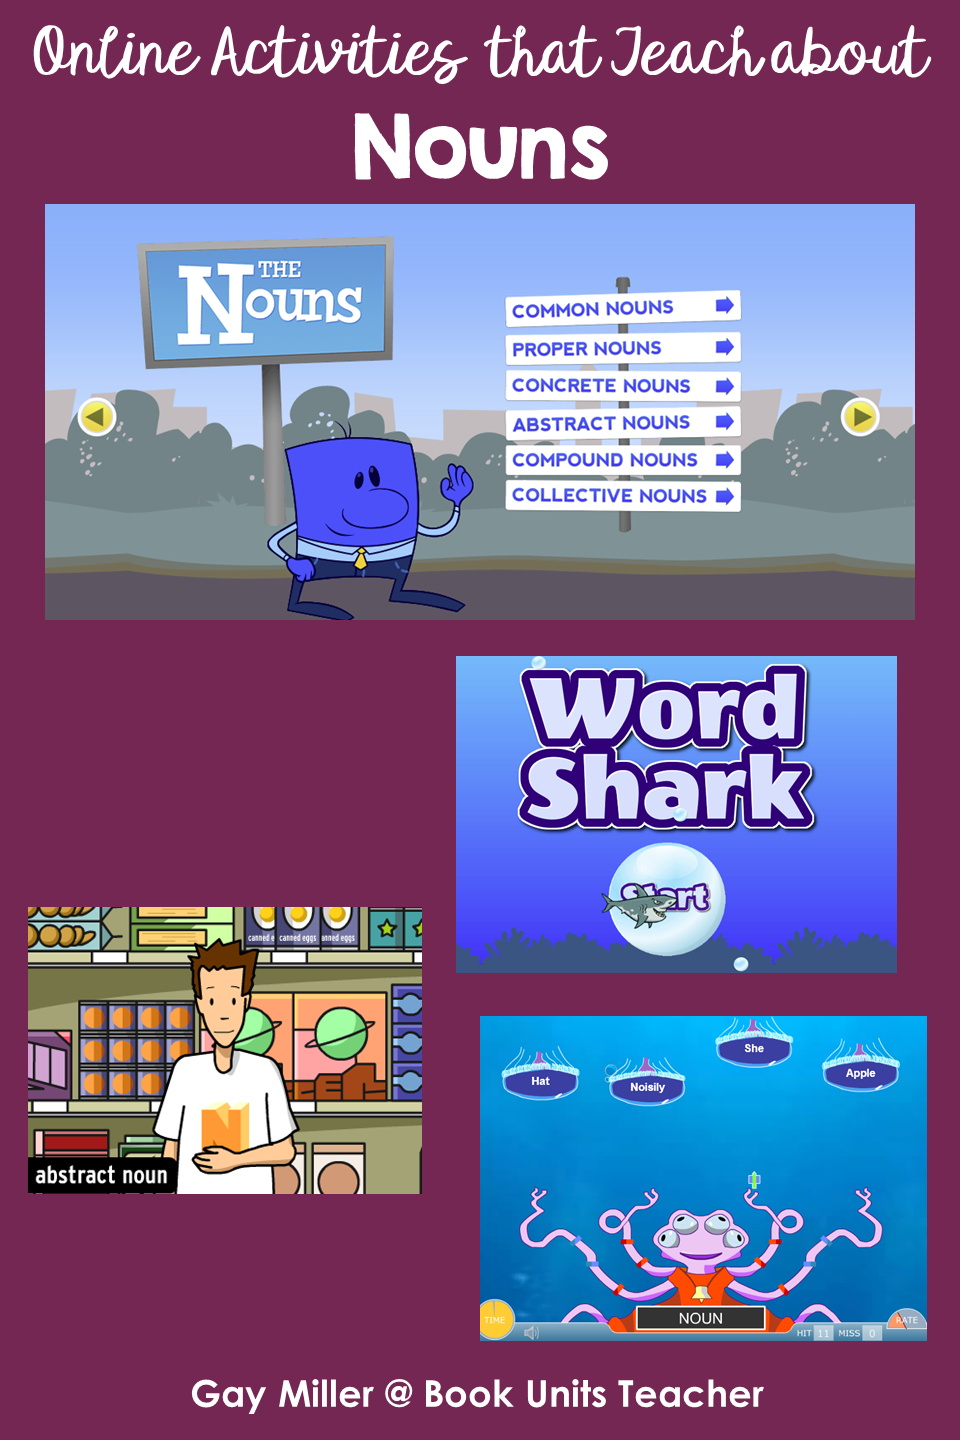 Nounss - Activites on the Web